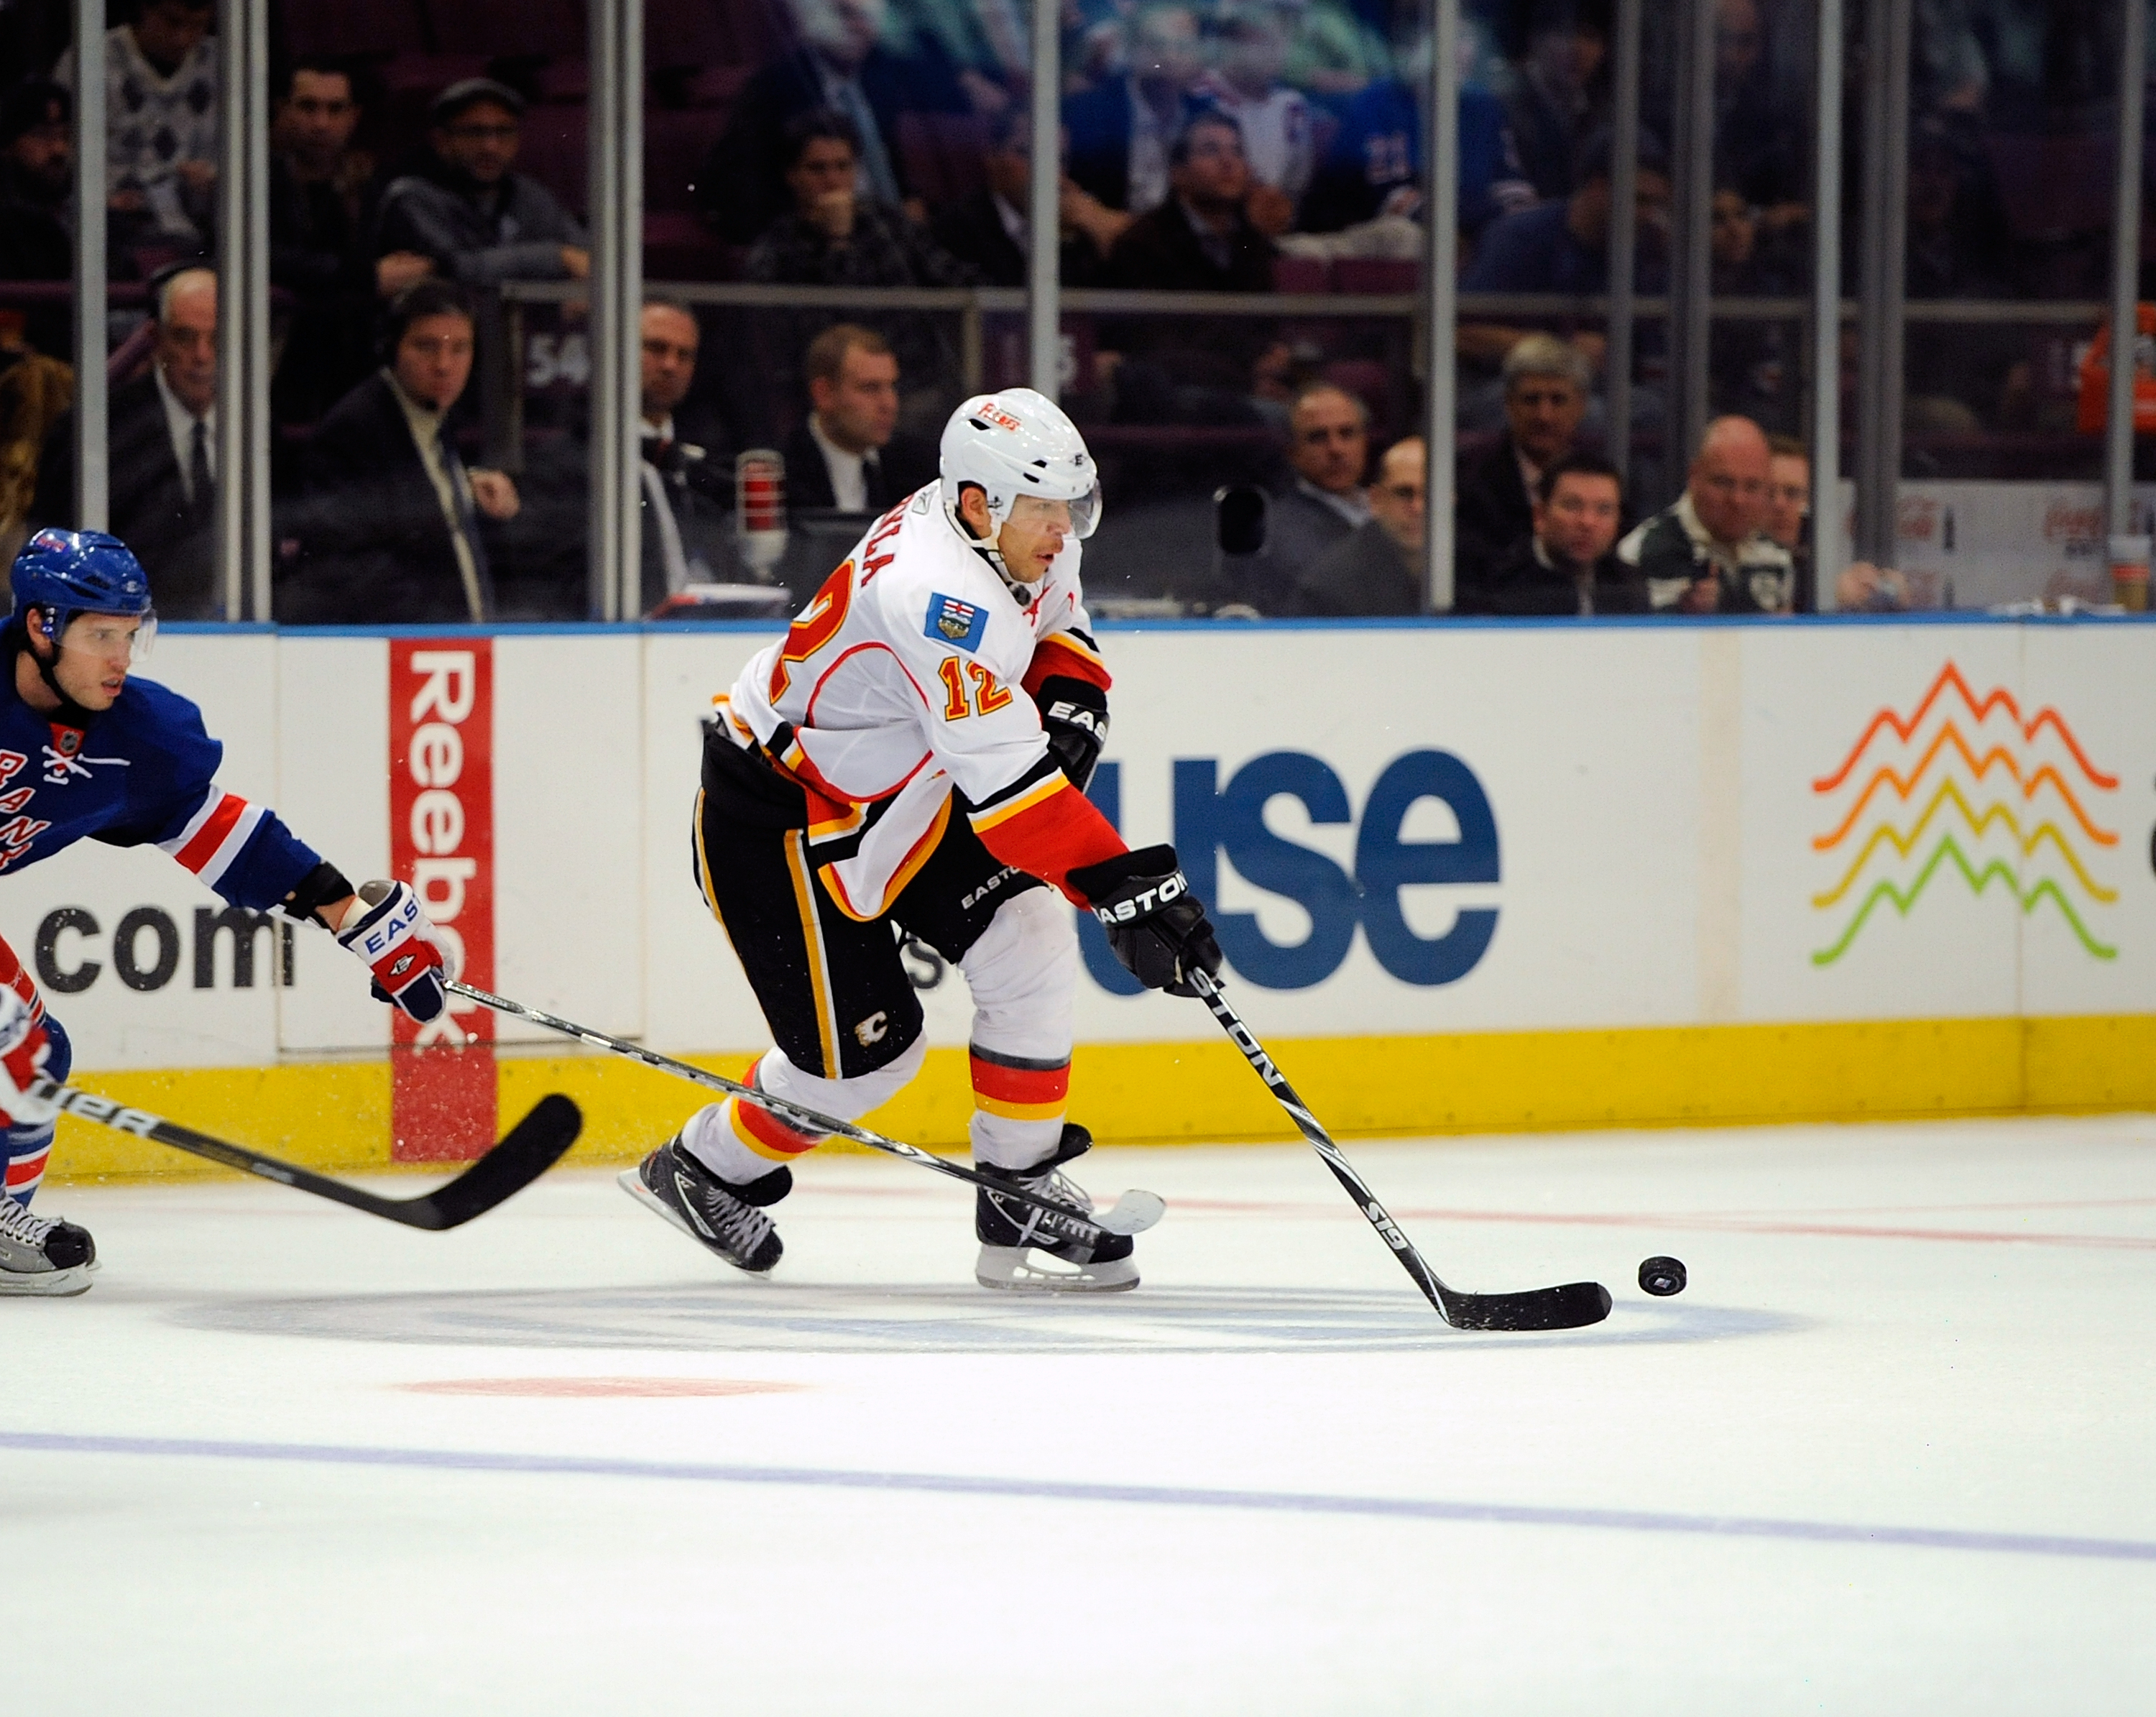 NEW YORK - NOVEMBER 22: Jerome Iginla #12 of the Calgary Flames in action against the New York Rangers  on November 22, 2010 at Madison Square Garden in New York City.  (Photo by Lou Capozzola/Getty Images)